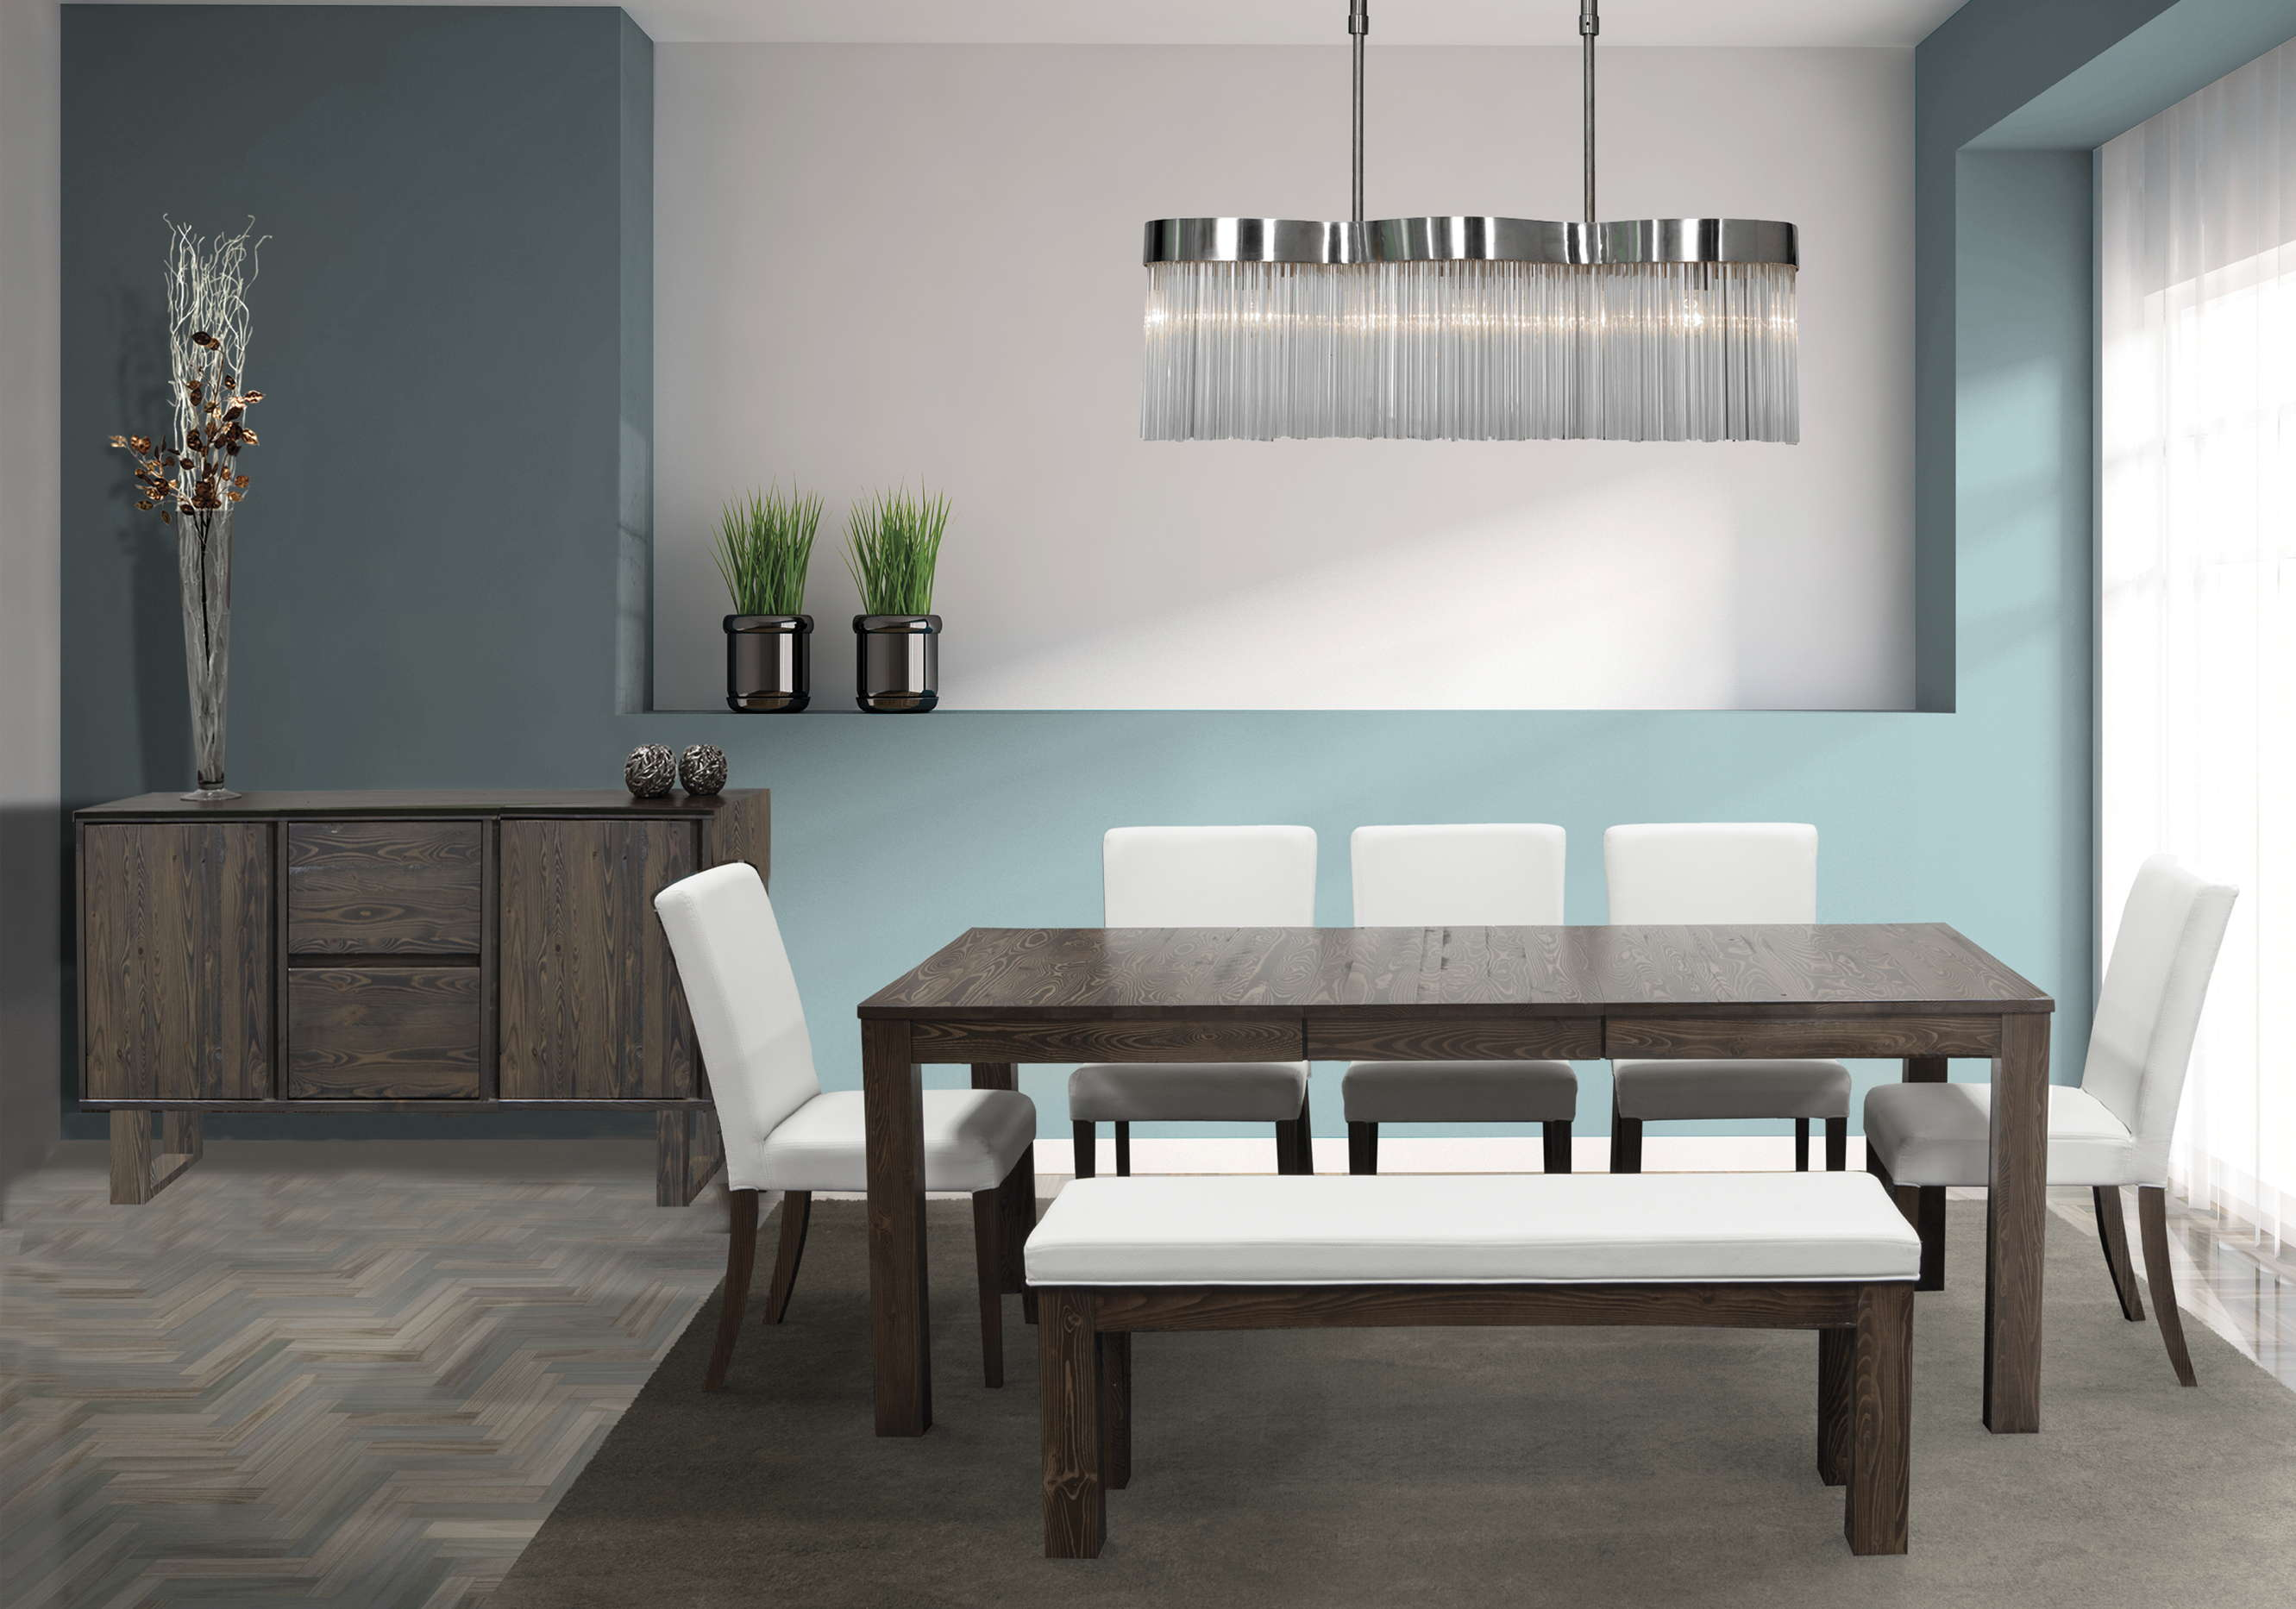 kitchen banquette furniture italian cabinets viebois - catalog dining rooms